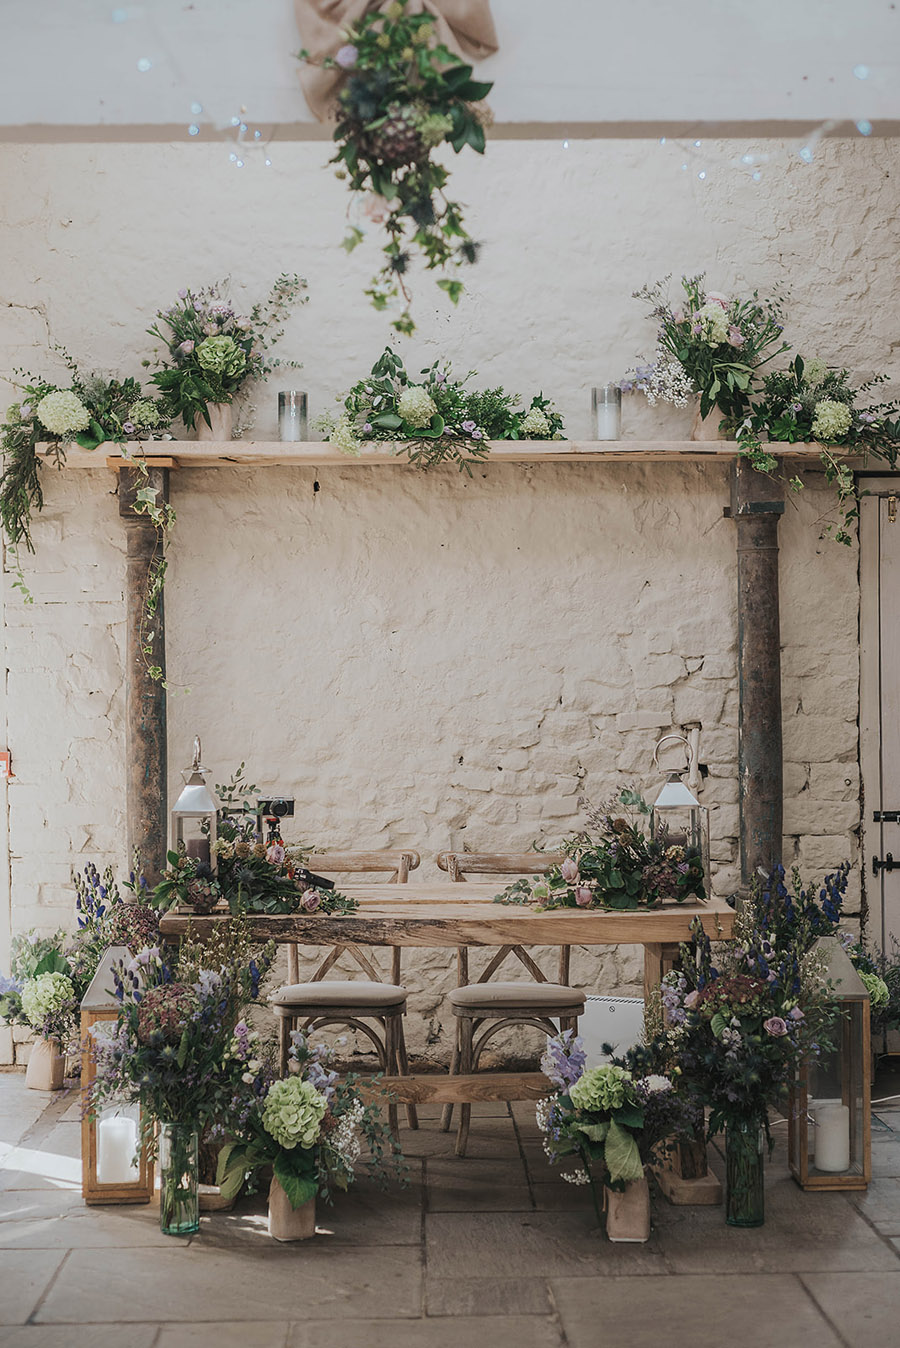 Kath & Adam's creative, DIY wedding at Wyresdale park, with Love Gets Sweeter and Claire Basiuk Photography (16)